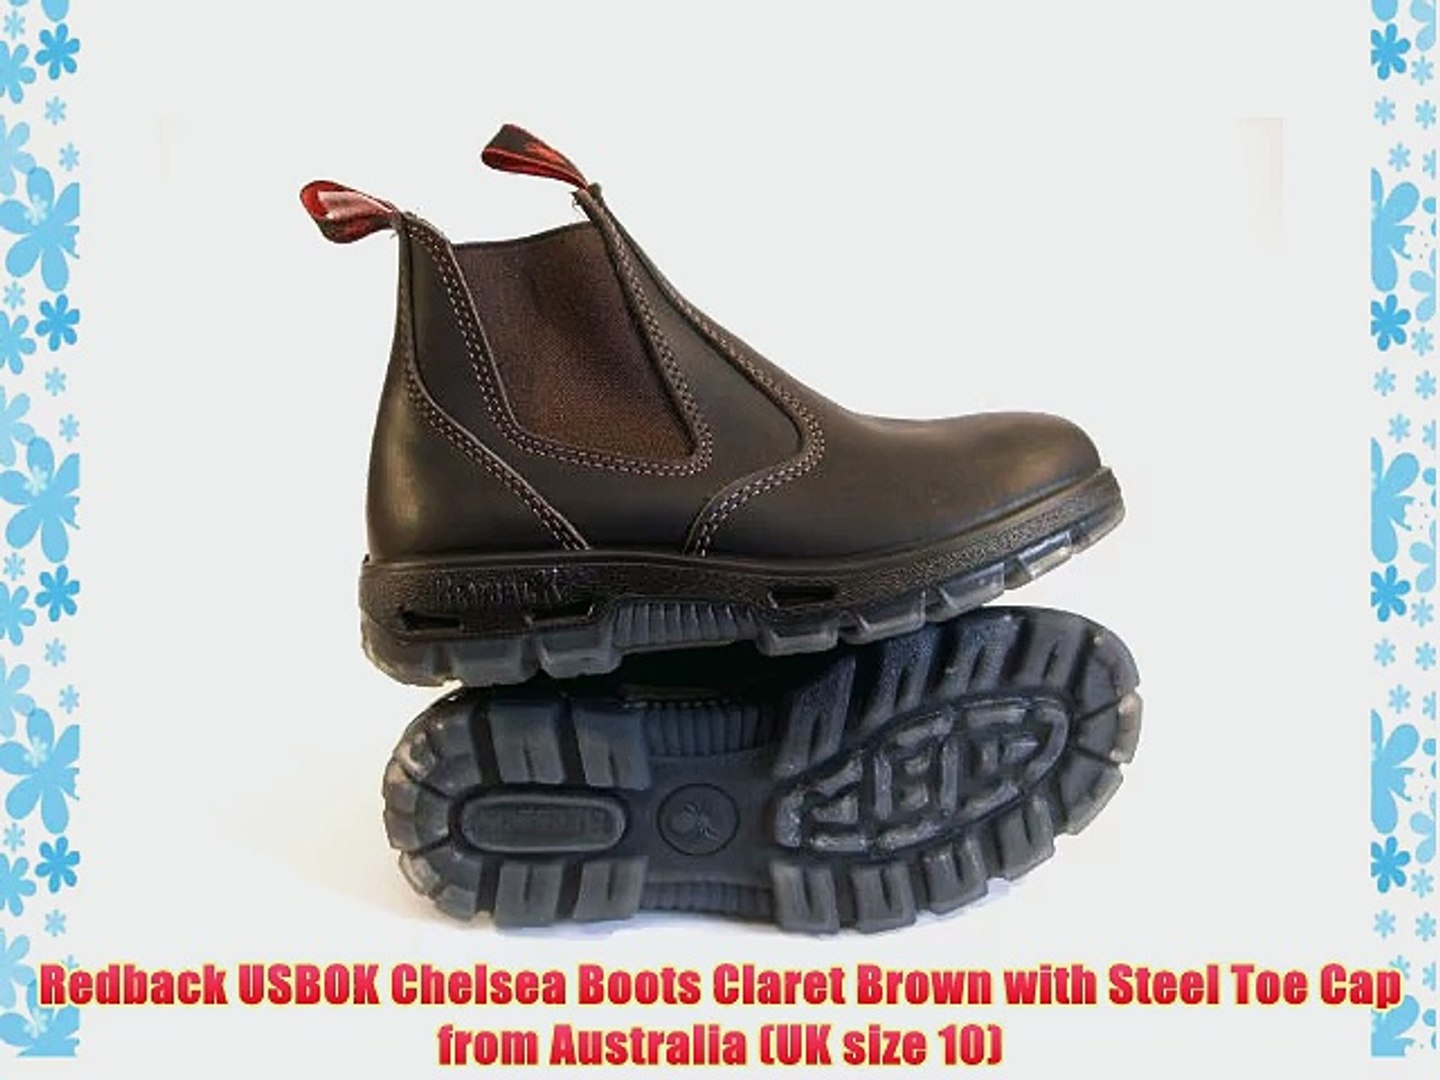 b33822f1f35 Redback USBOK Chelsea Boots Claret Brown with Steel Toe Cap from Australia  (UK size 10)